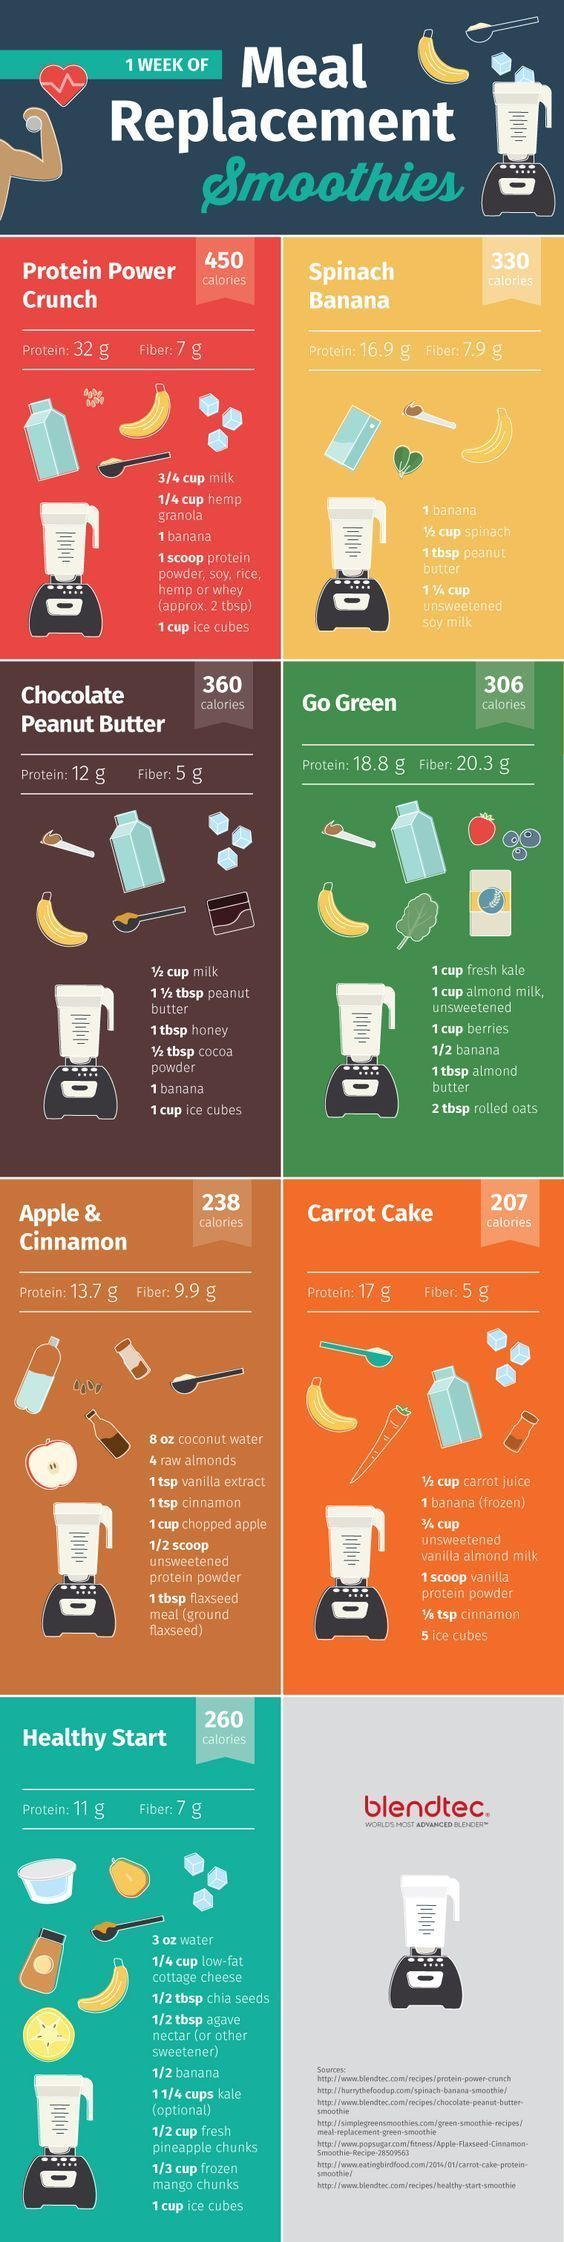 All about Weight loss You should be getting a certain amount of protein & fiber every day to stay heal...